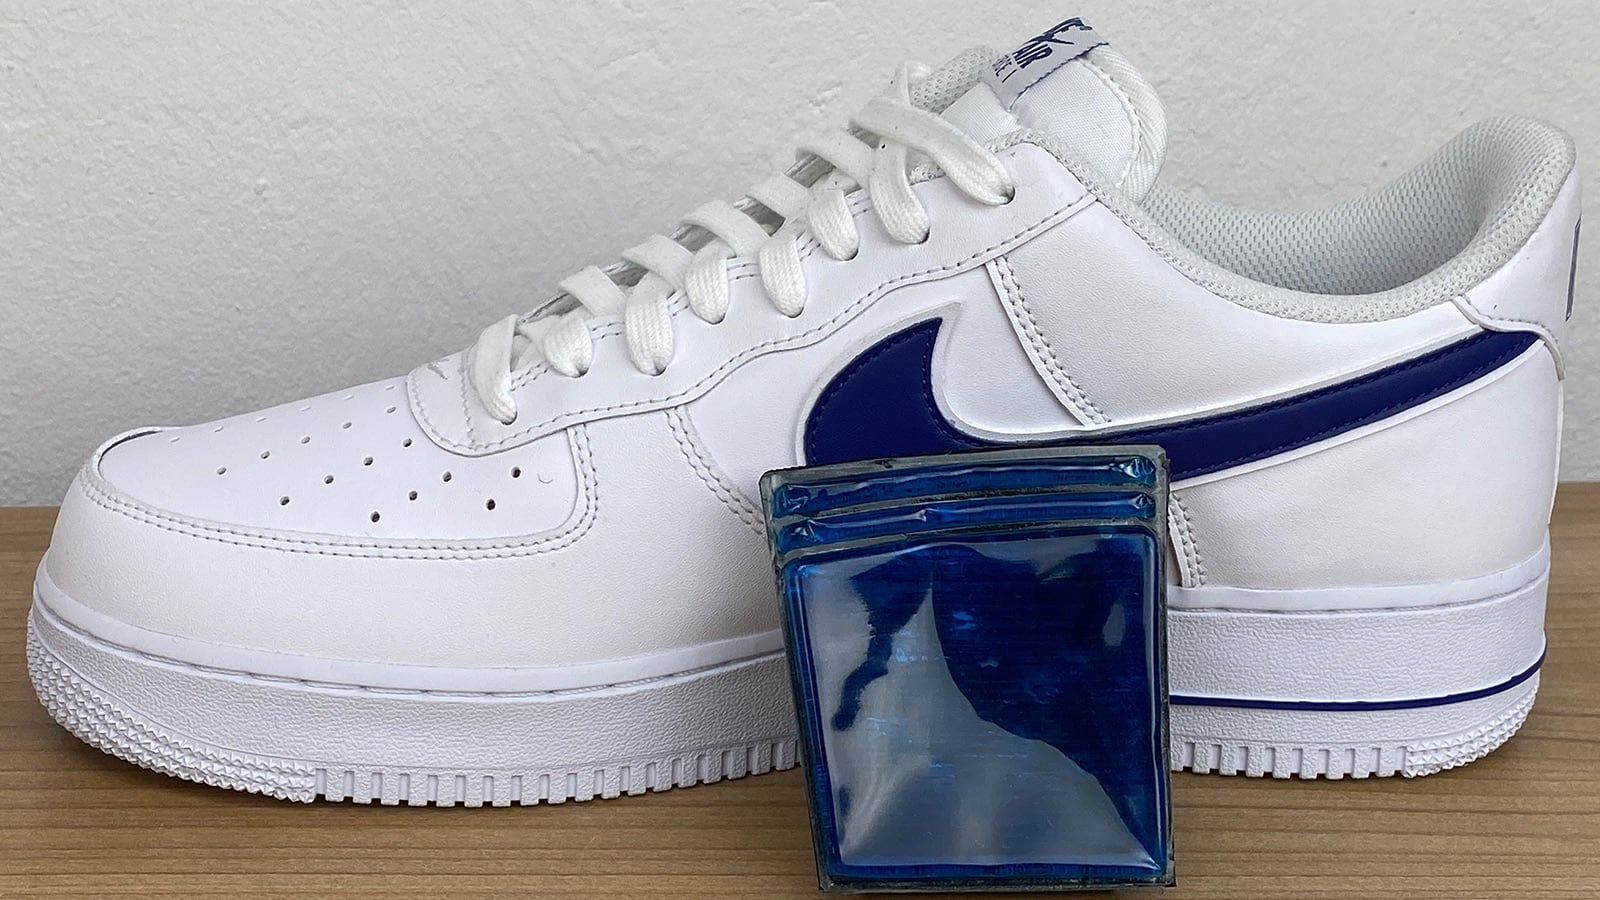 LaceComfort Shoelace Solution